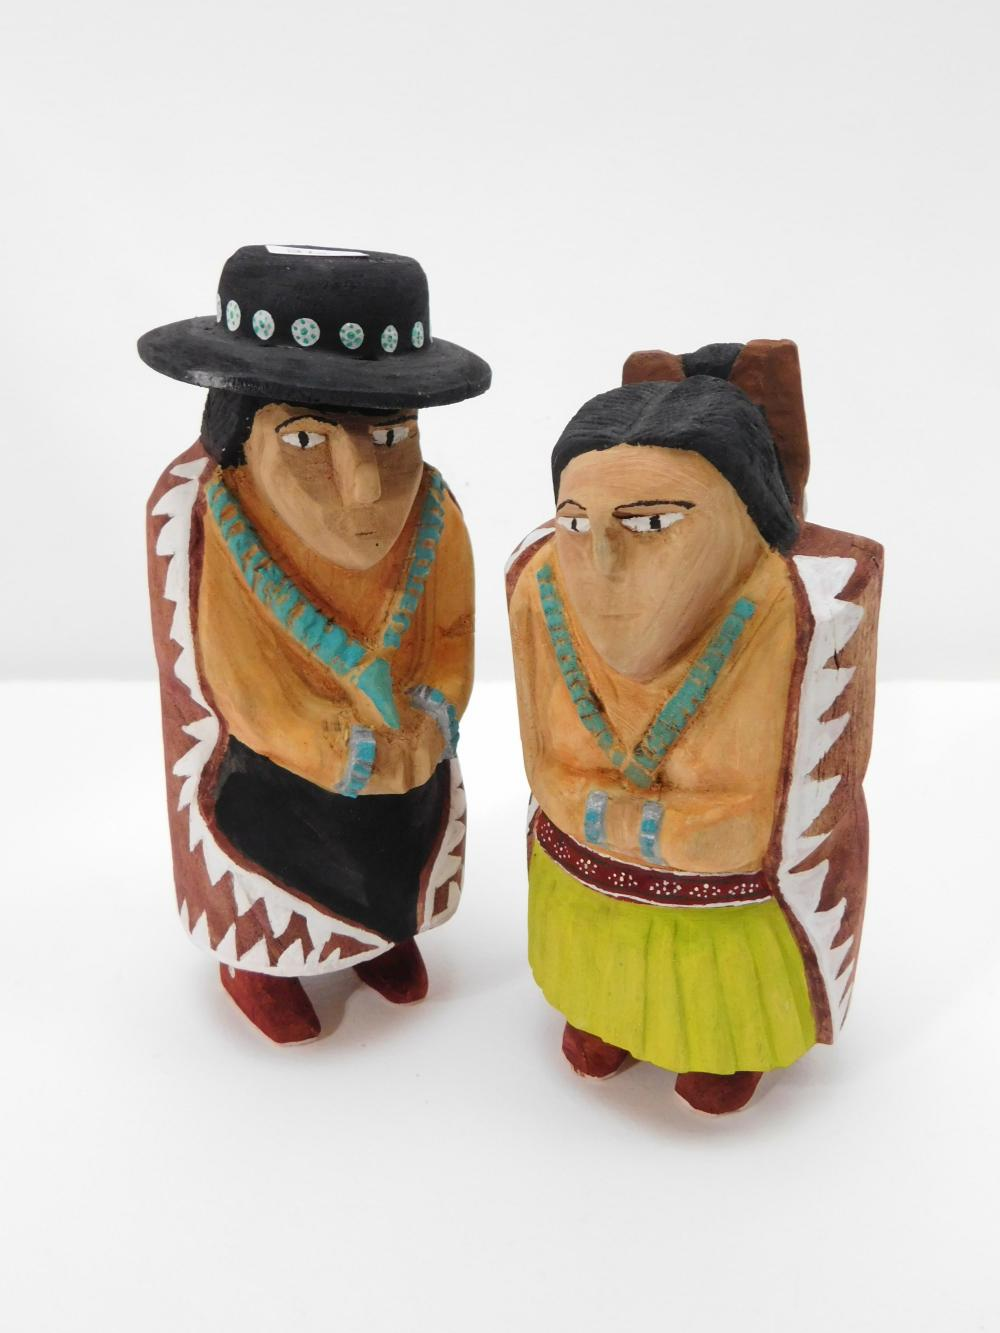 2 Native American Robin Wellito Carved Wooden Navajo Man & Woman